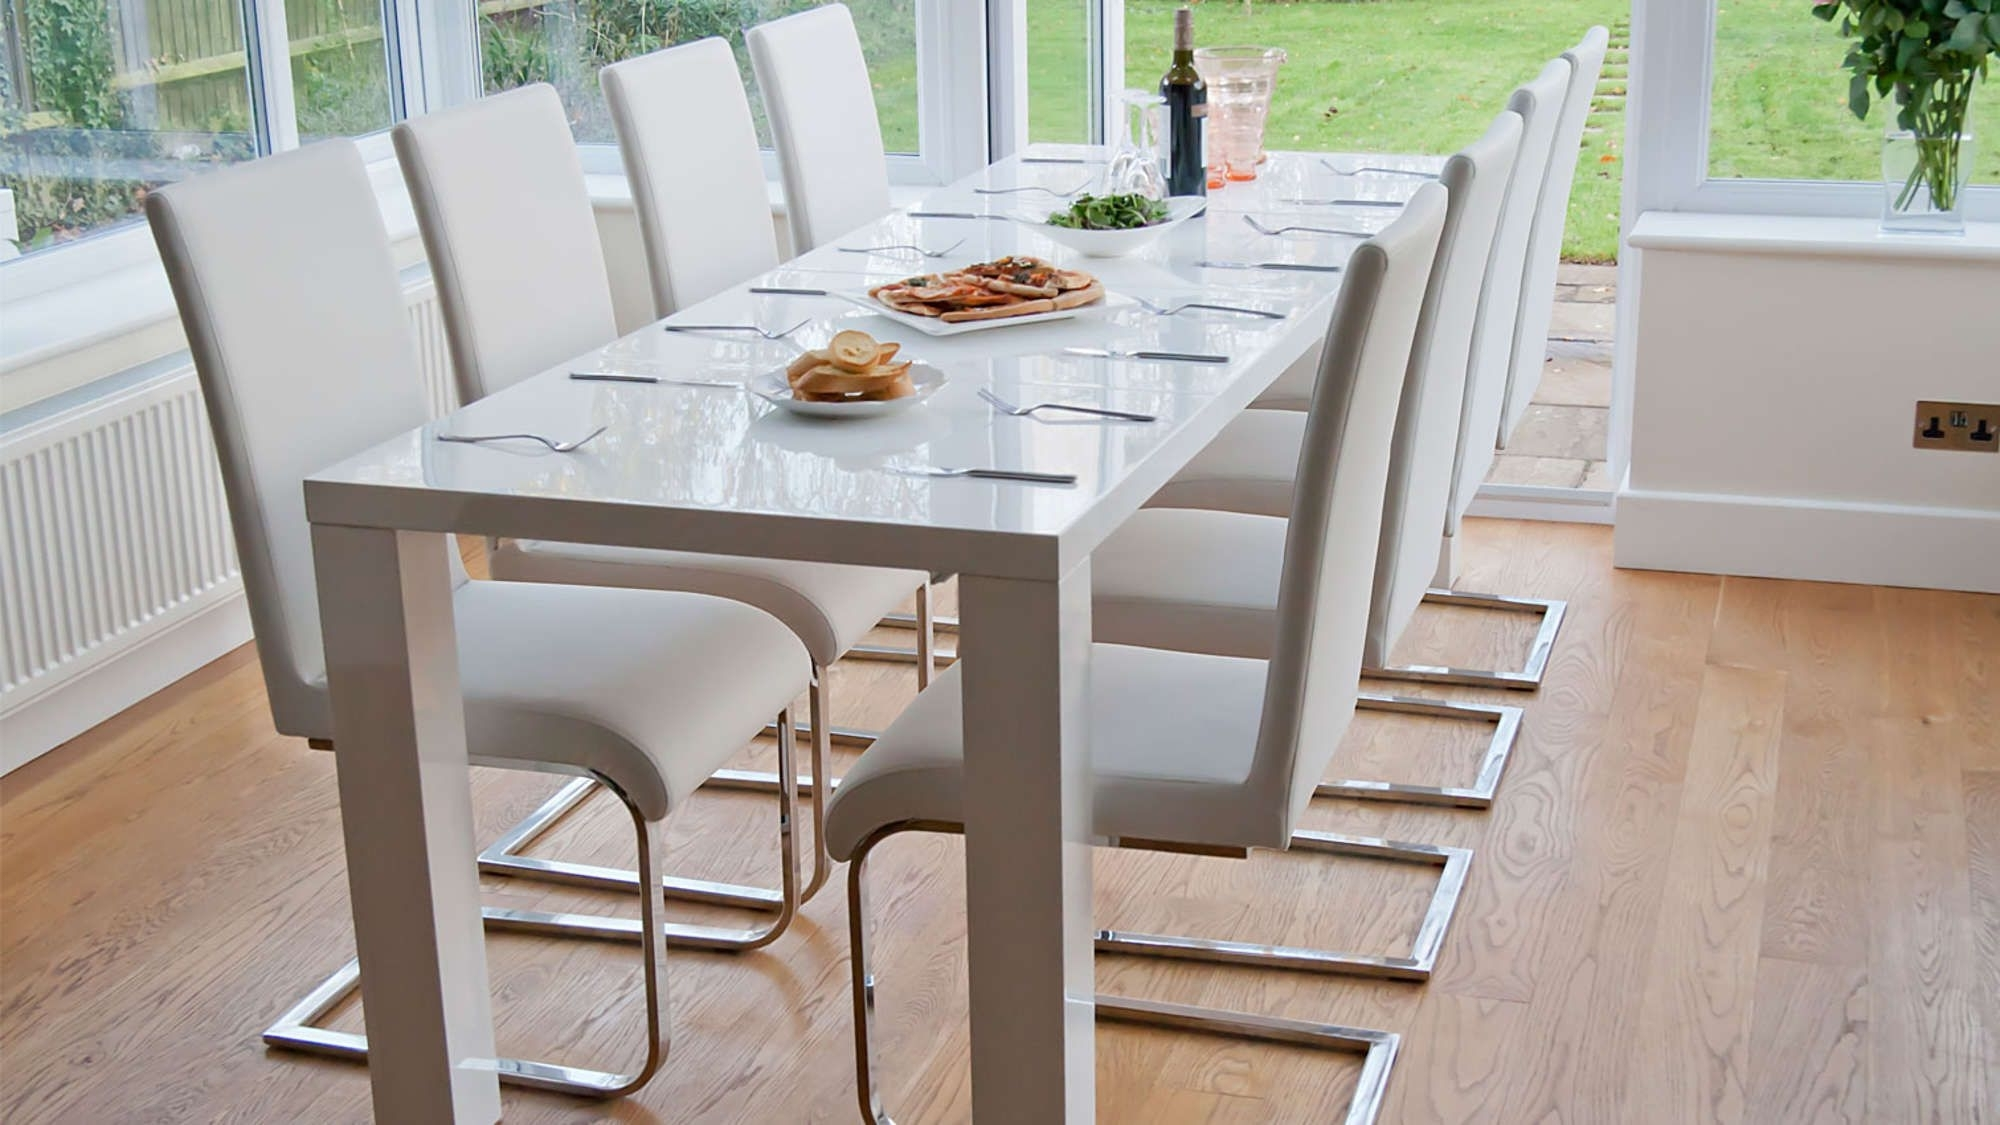 Most Recent White Gloss Dining Room Furniture Throughout Fern White Gloss Extending Dining Table (View 12 of 25)